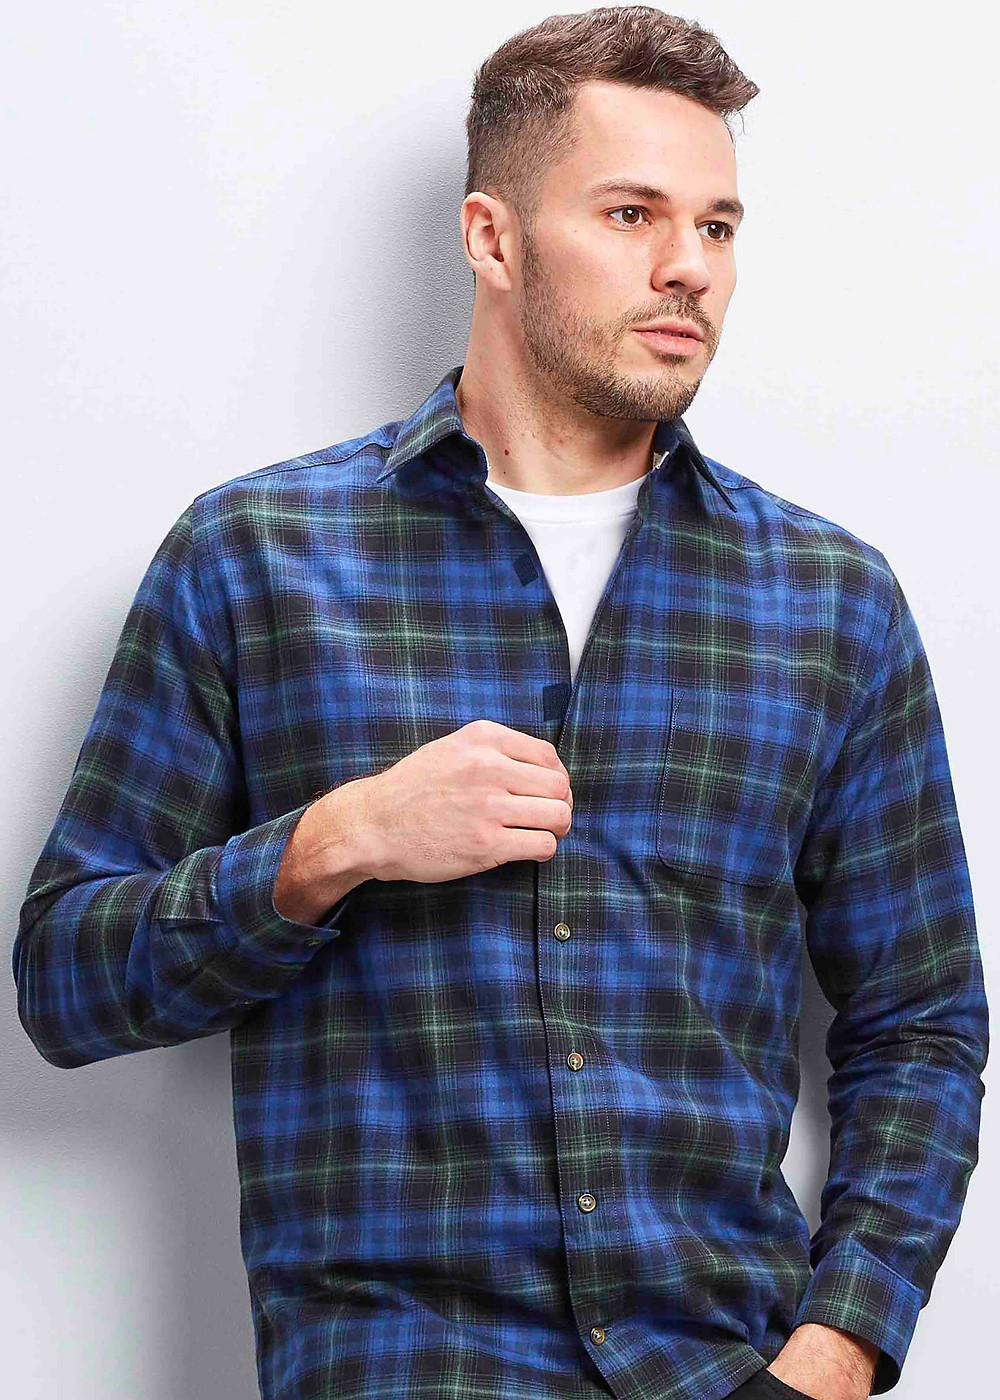 A white man with short brown hair wears a blue and green plaid checked short with long sleeves, fake buttons and velcro closures. he wears a white tee shirt underneath and black jeans. He has one hand in his pocket.